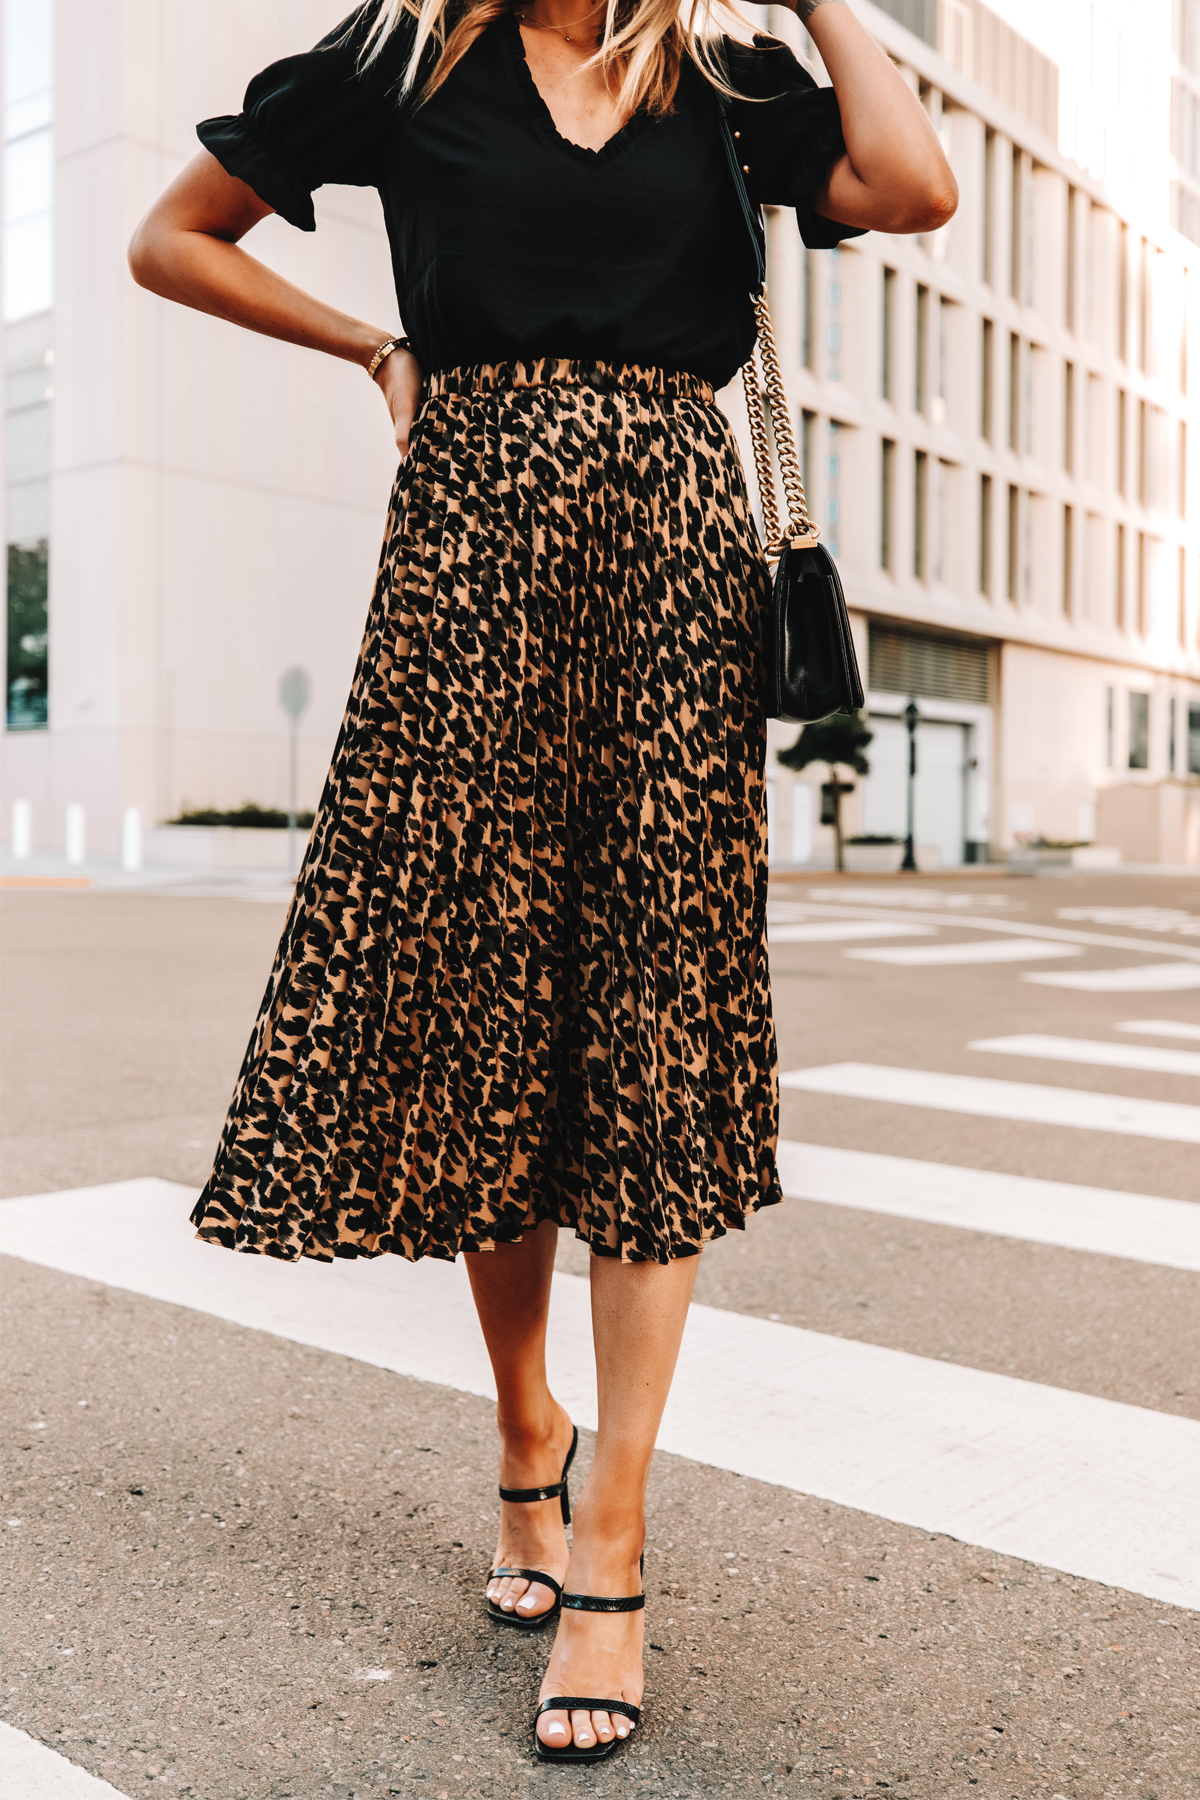 Fashion Jackson Wearing Black Top Leopard Midi Skirt Black Heeled Sandals